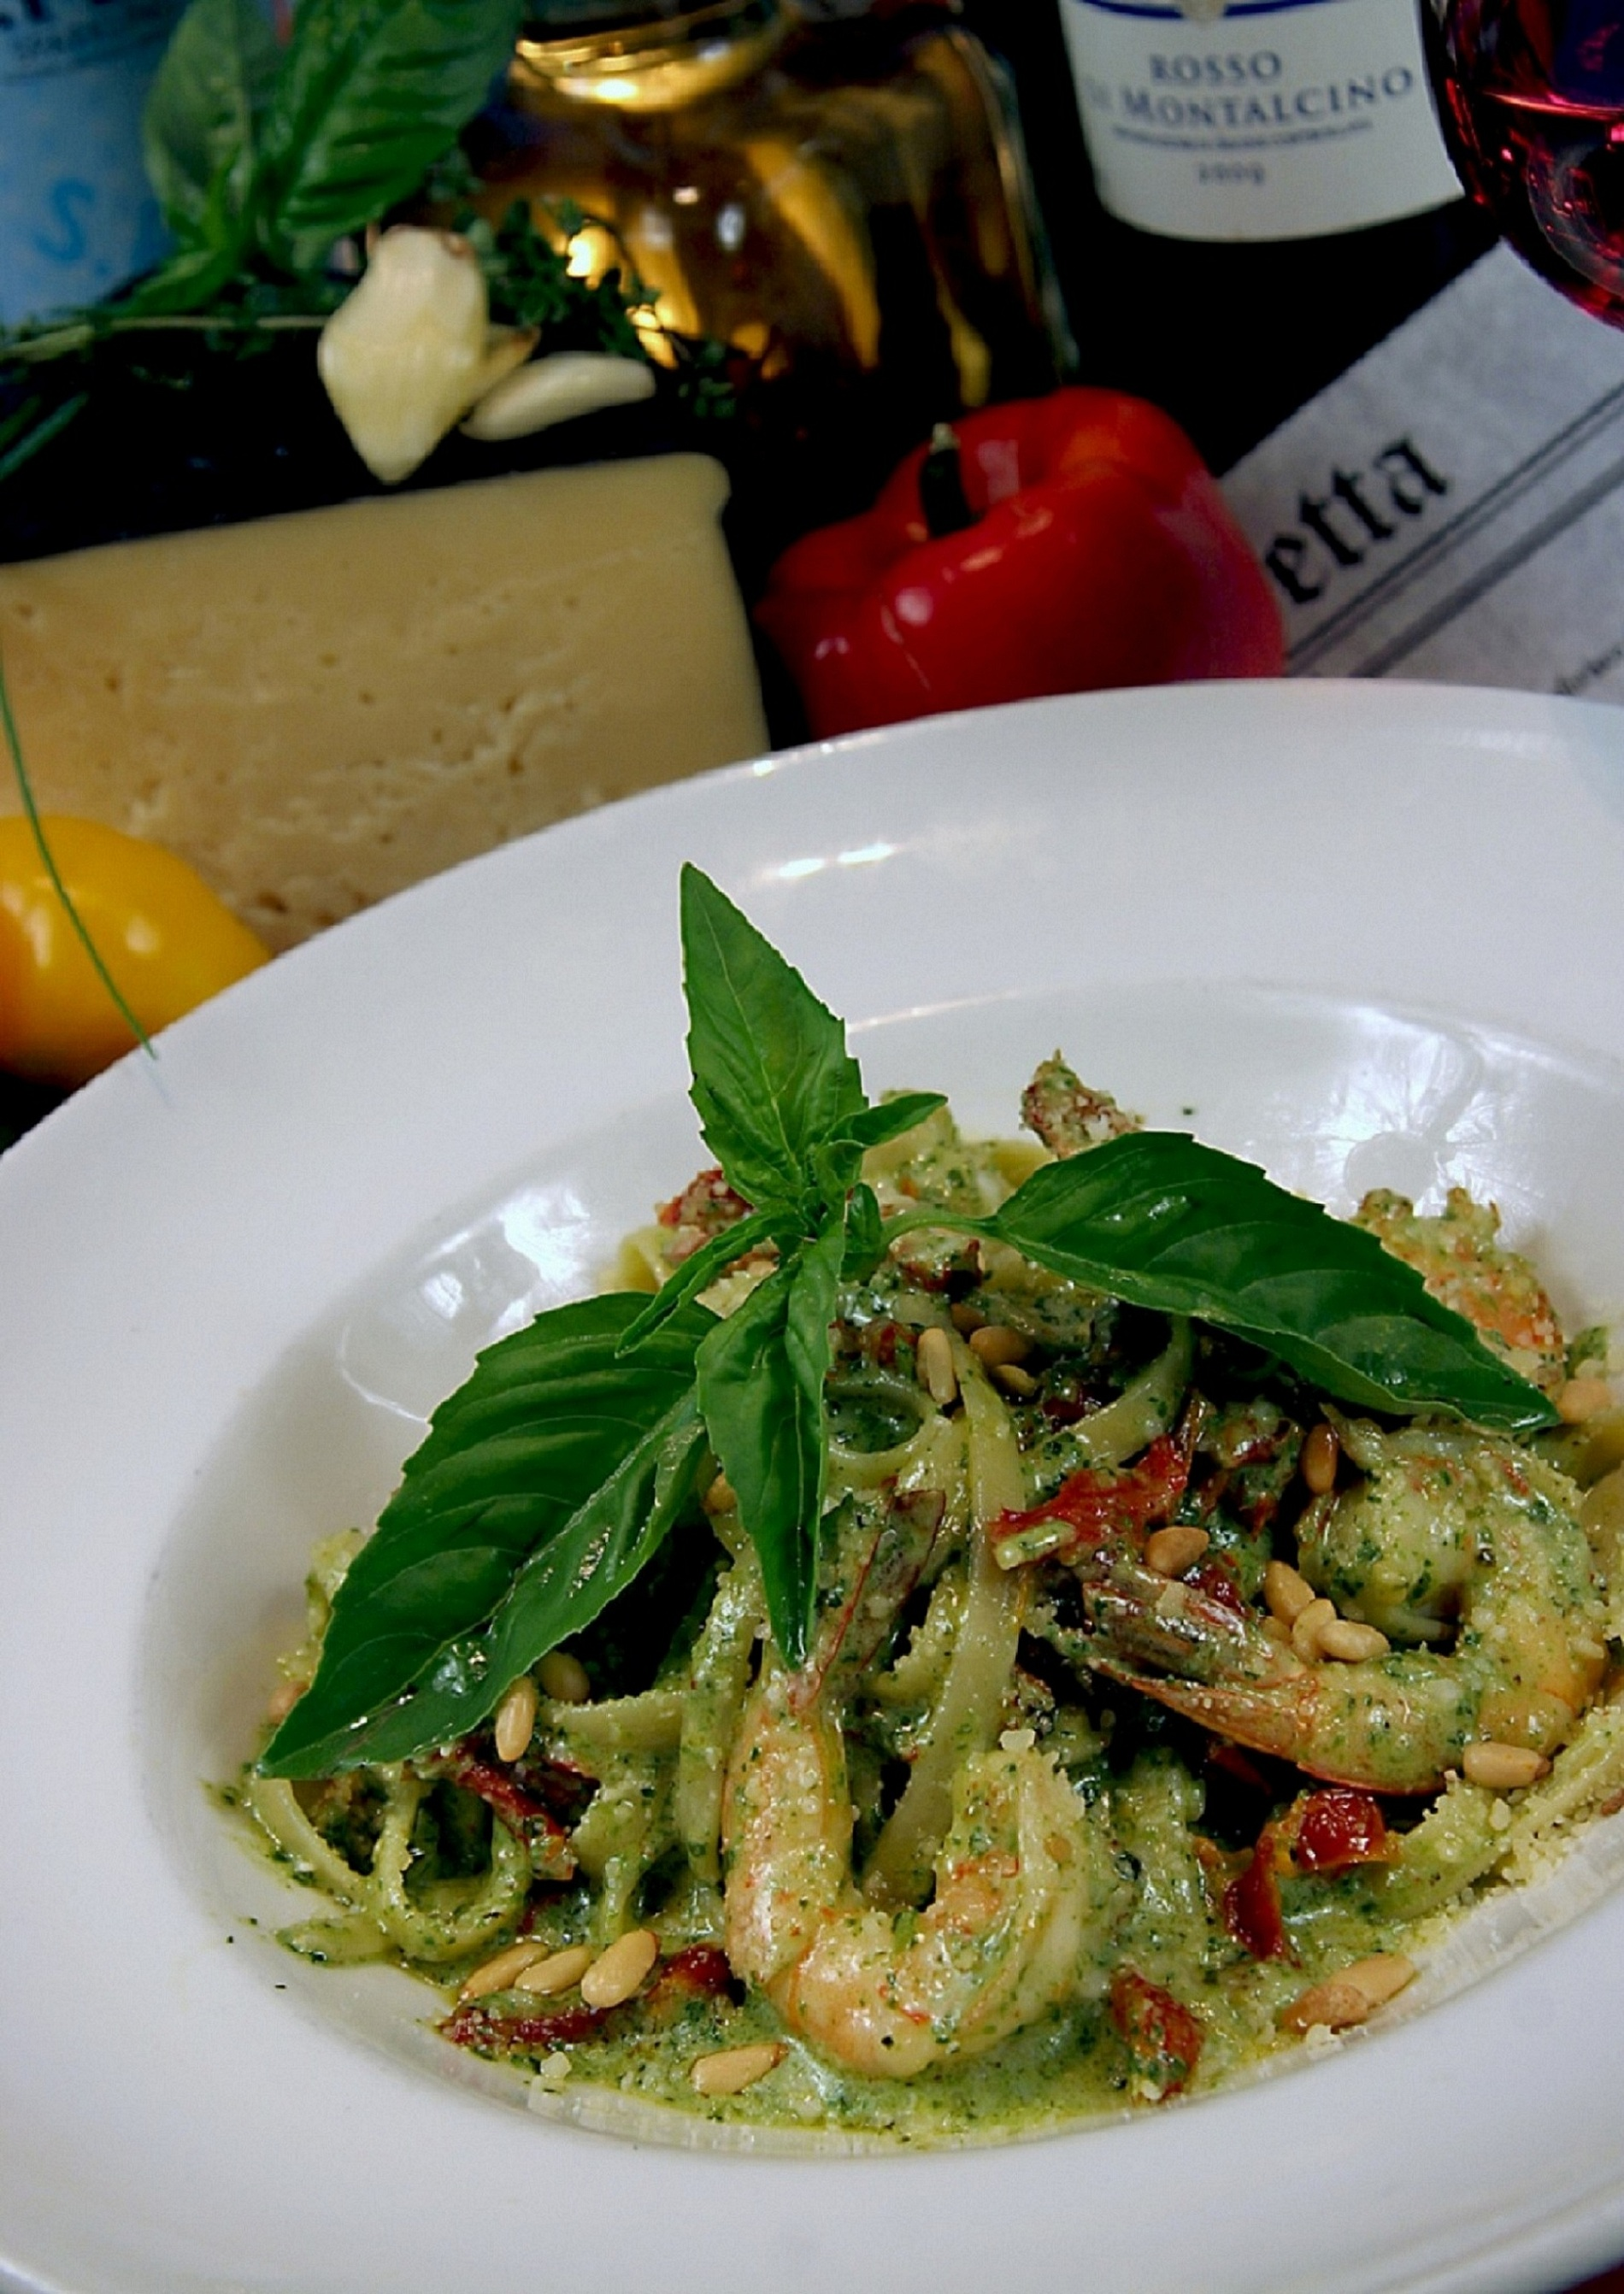 Fettuccine al pesto con gamberi, photo courtesy of TREVI.